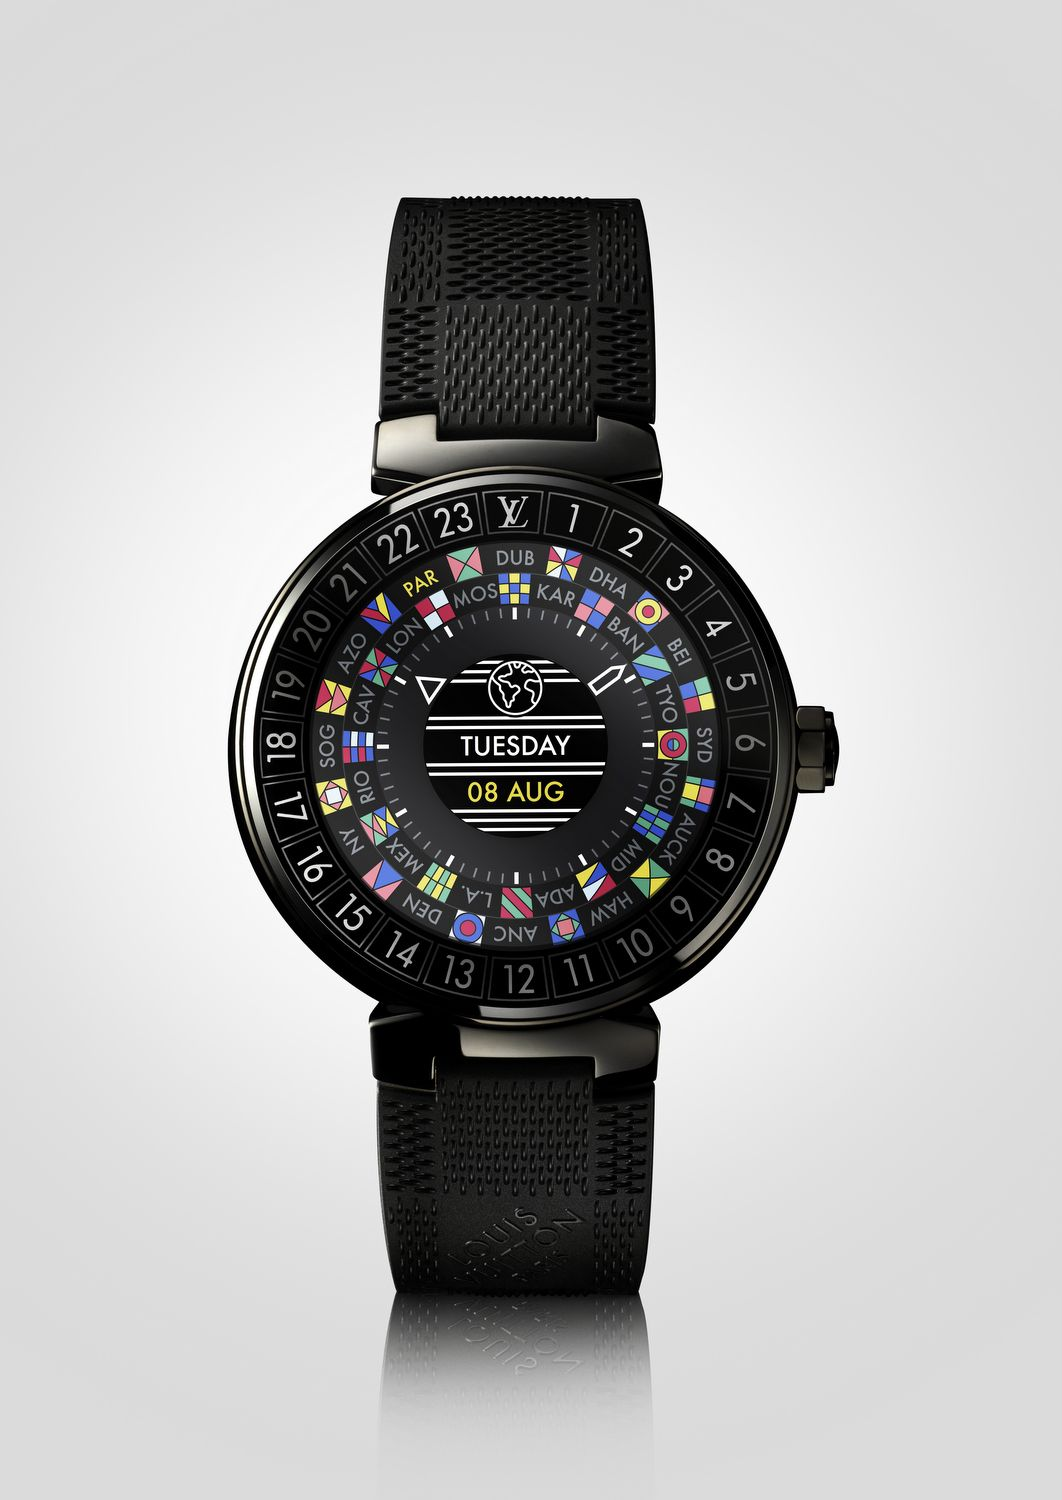 5 Things To Know About The Louis Vuitton Tambour Horizon Watch